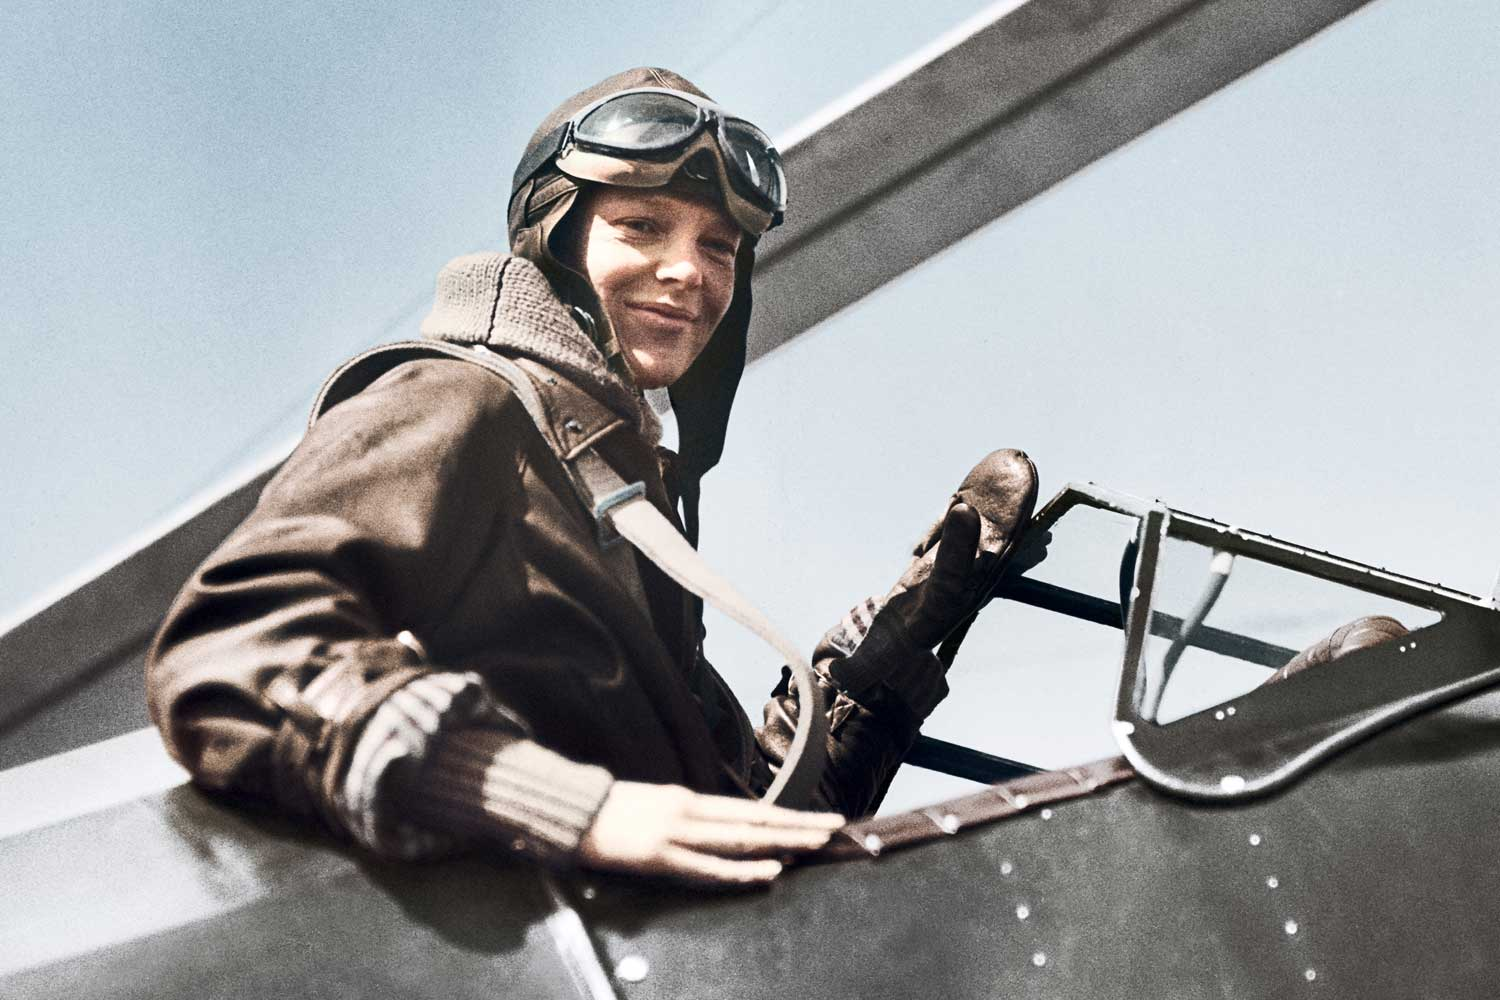 American aviator, Amelia Earhart who became the first female aviator to fly solo across the Atlantic Ocean in 1932, in 14 hours and 56 minutes, is one of four early 20th century legends who served as inspiration for the 2020 Longines Spirit collection